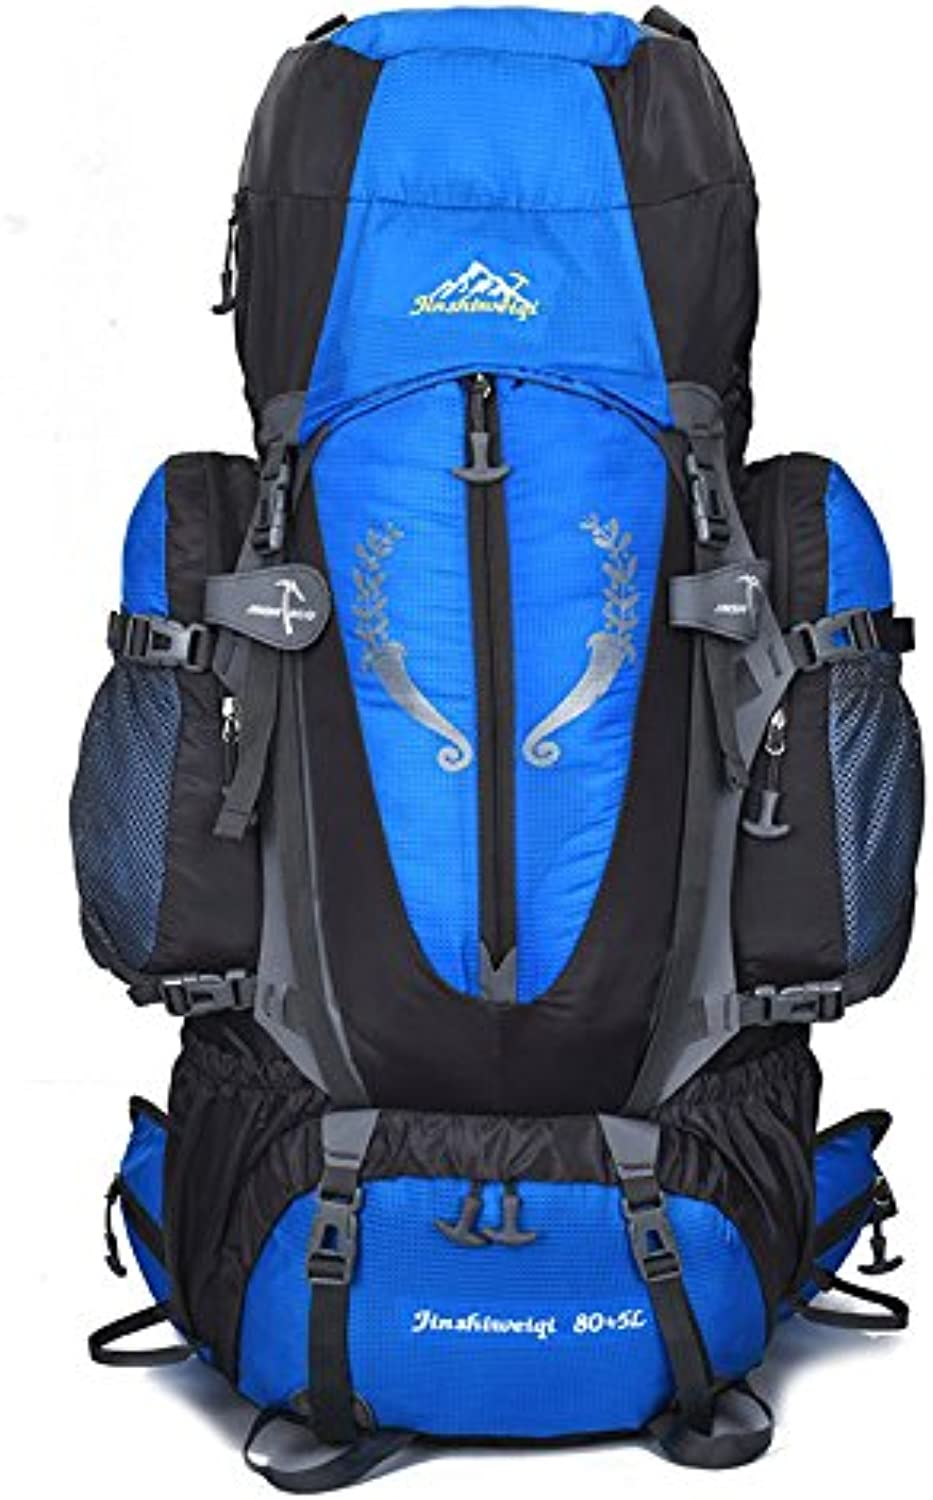 GWQGZ Leisure Outdoor Large Capacity Mountaineering Bag Hiking Camping Shoulder Bag